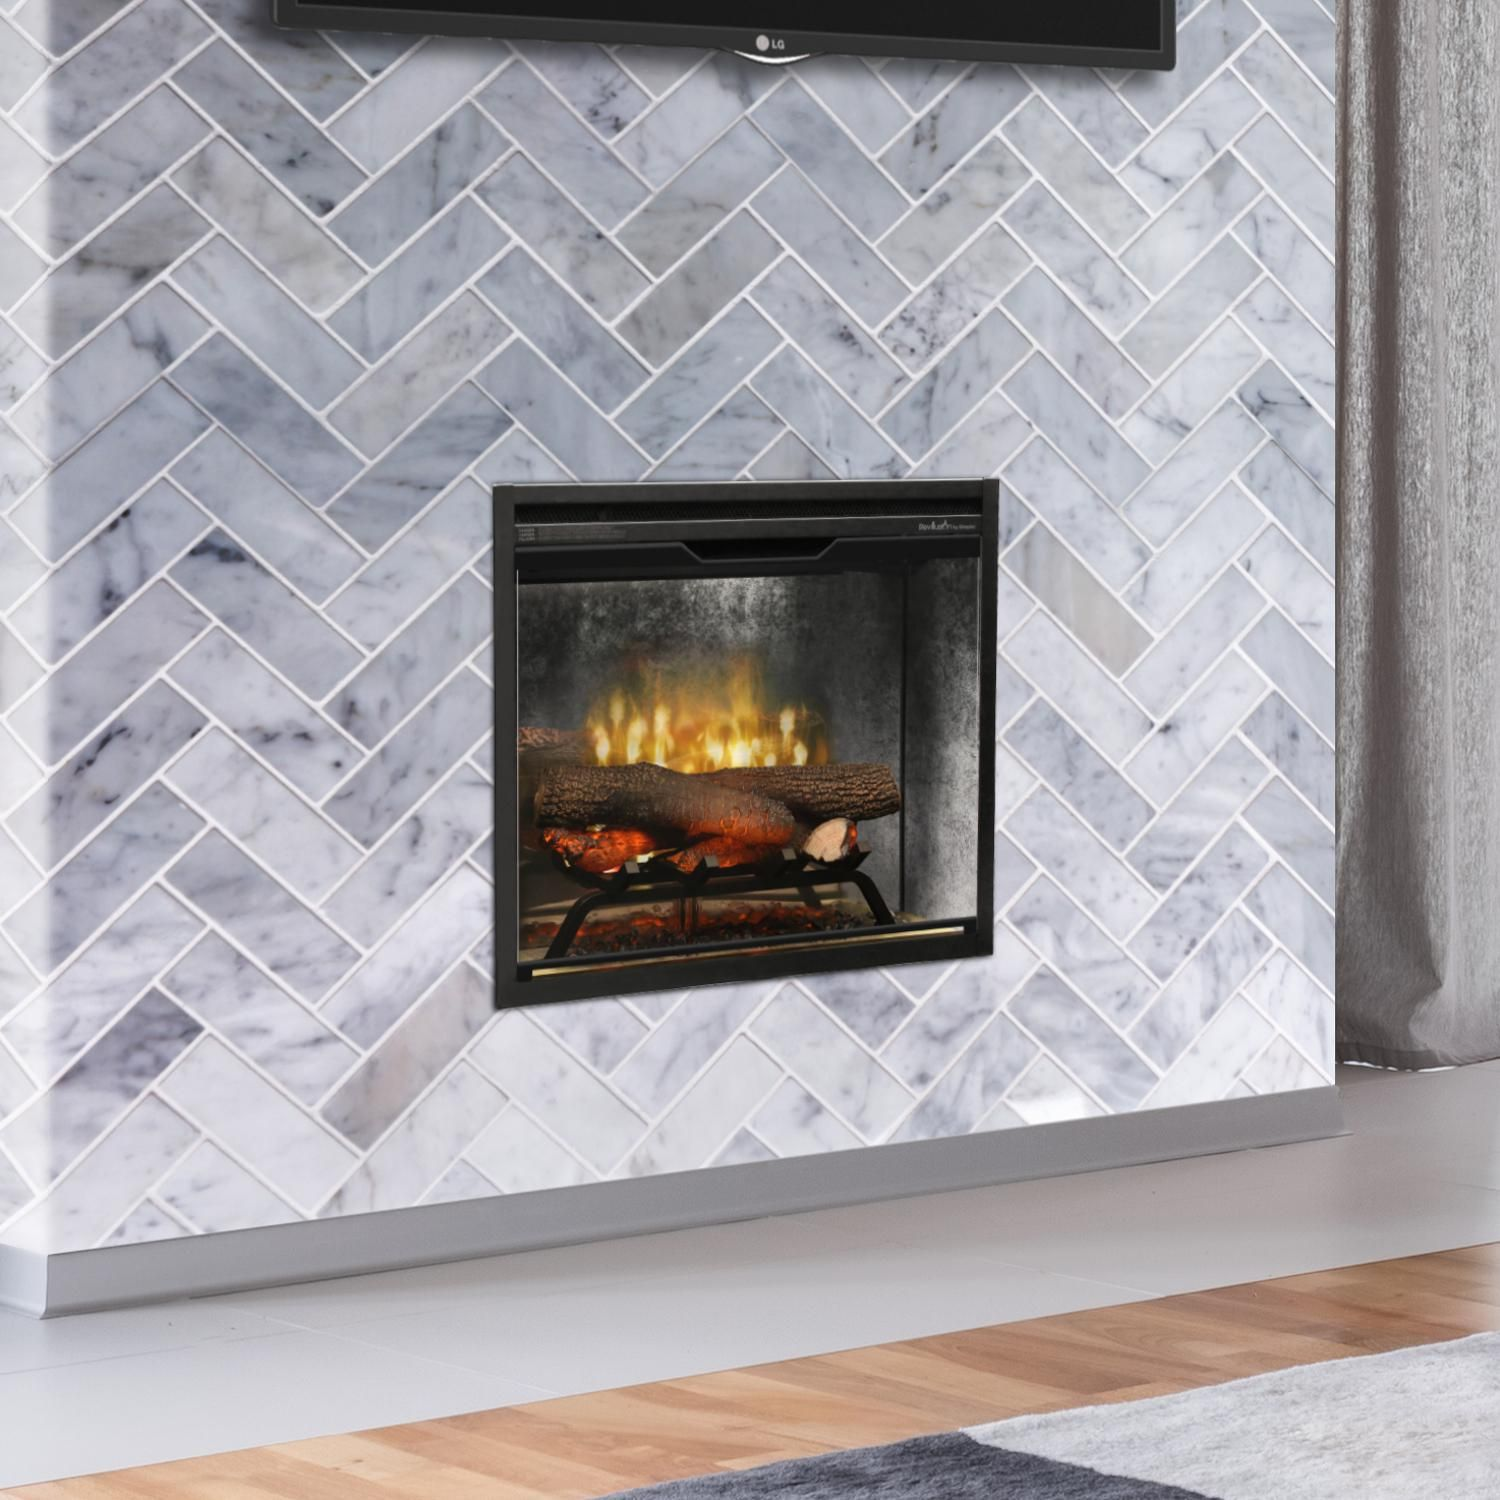 Dimplex Rbf24dlxwc Revillusion 24 Inch Built In Electric